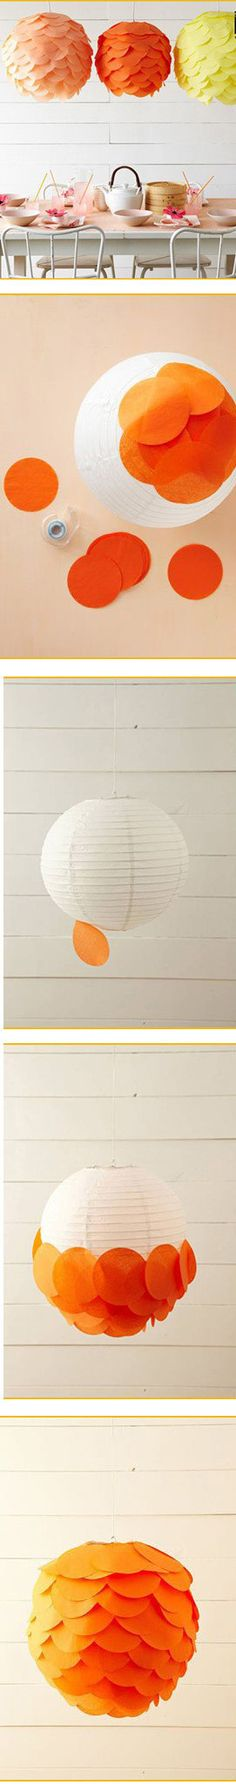 how to make a colorful paper lantern.